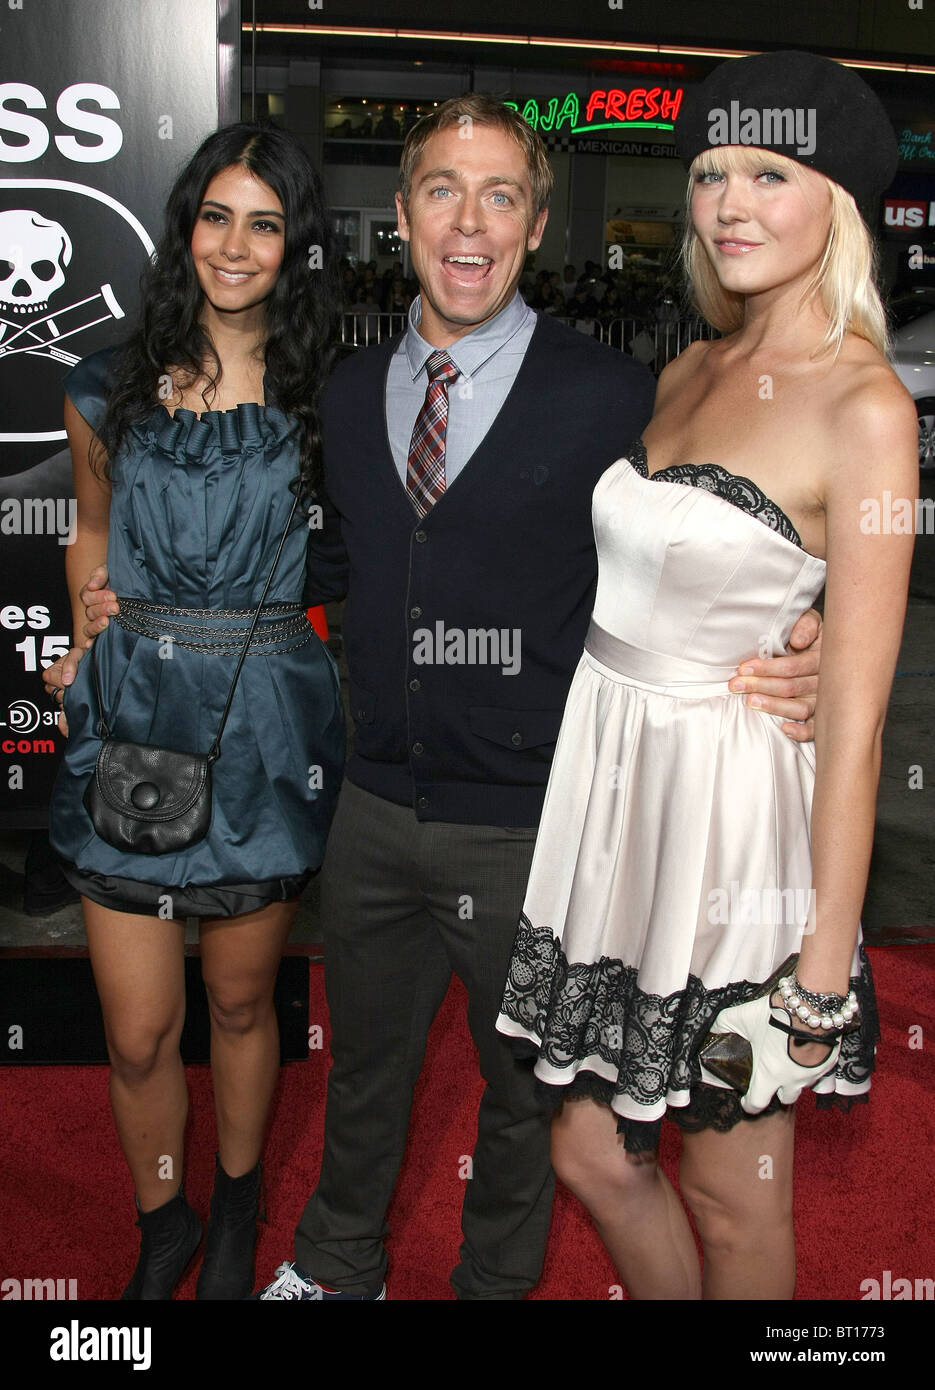 DAVE ENGLAND GUESTS JACKASS 3D PREMIERE HOLLYWOOD LOS ANGELES CALIFORNIA USA 13 October 2010 - Stock Image